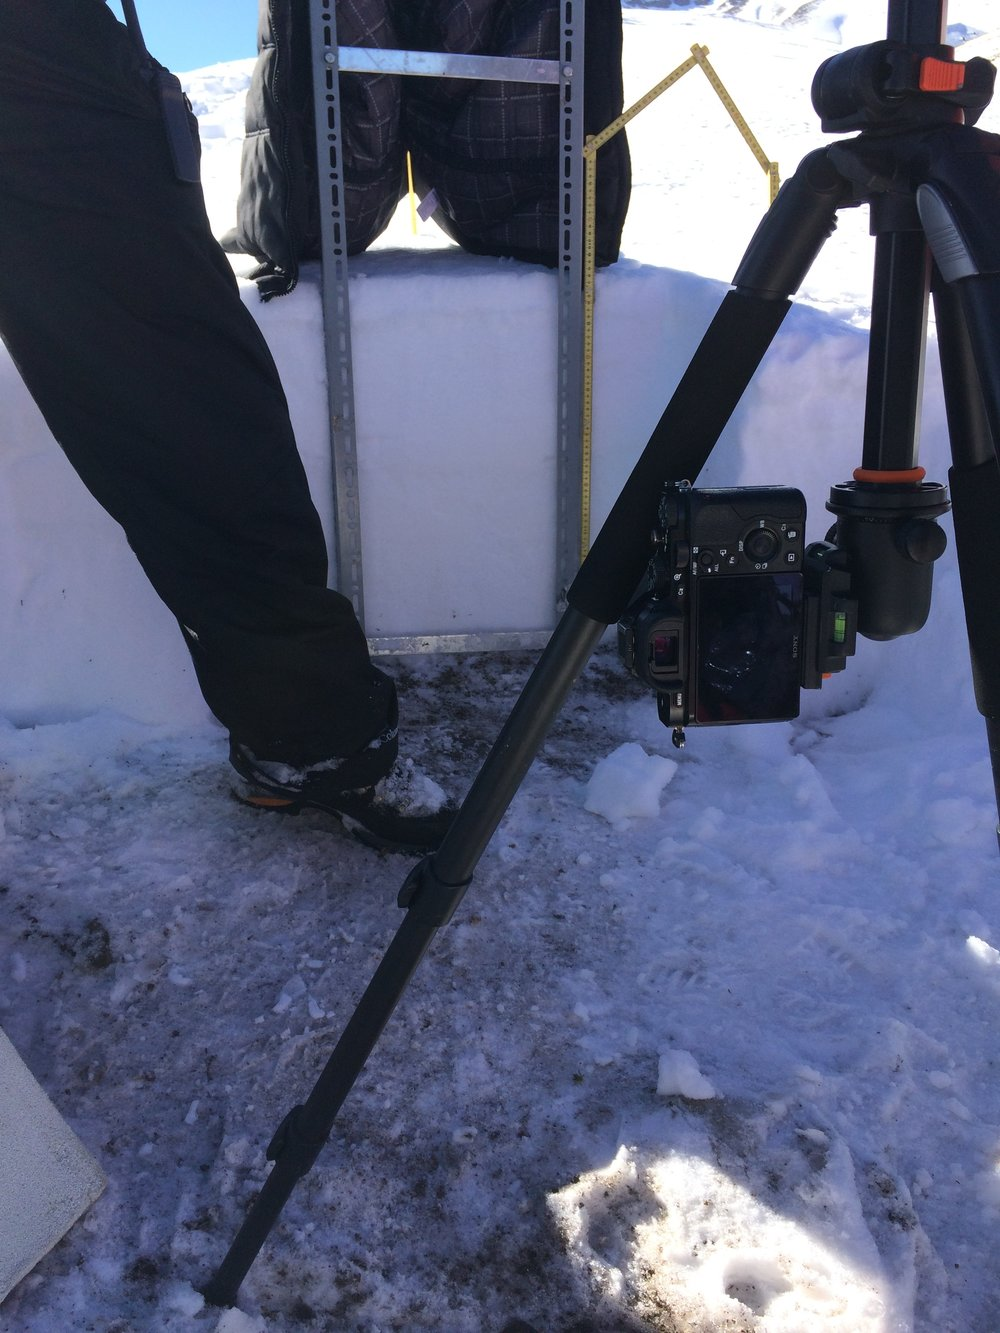 IR photo demonstration. Reflectance of snow in the near-infrared directly relates to snow density, so IR photos can be used to evaluate snowpack density variations with depth.